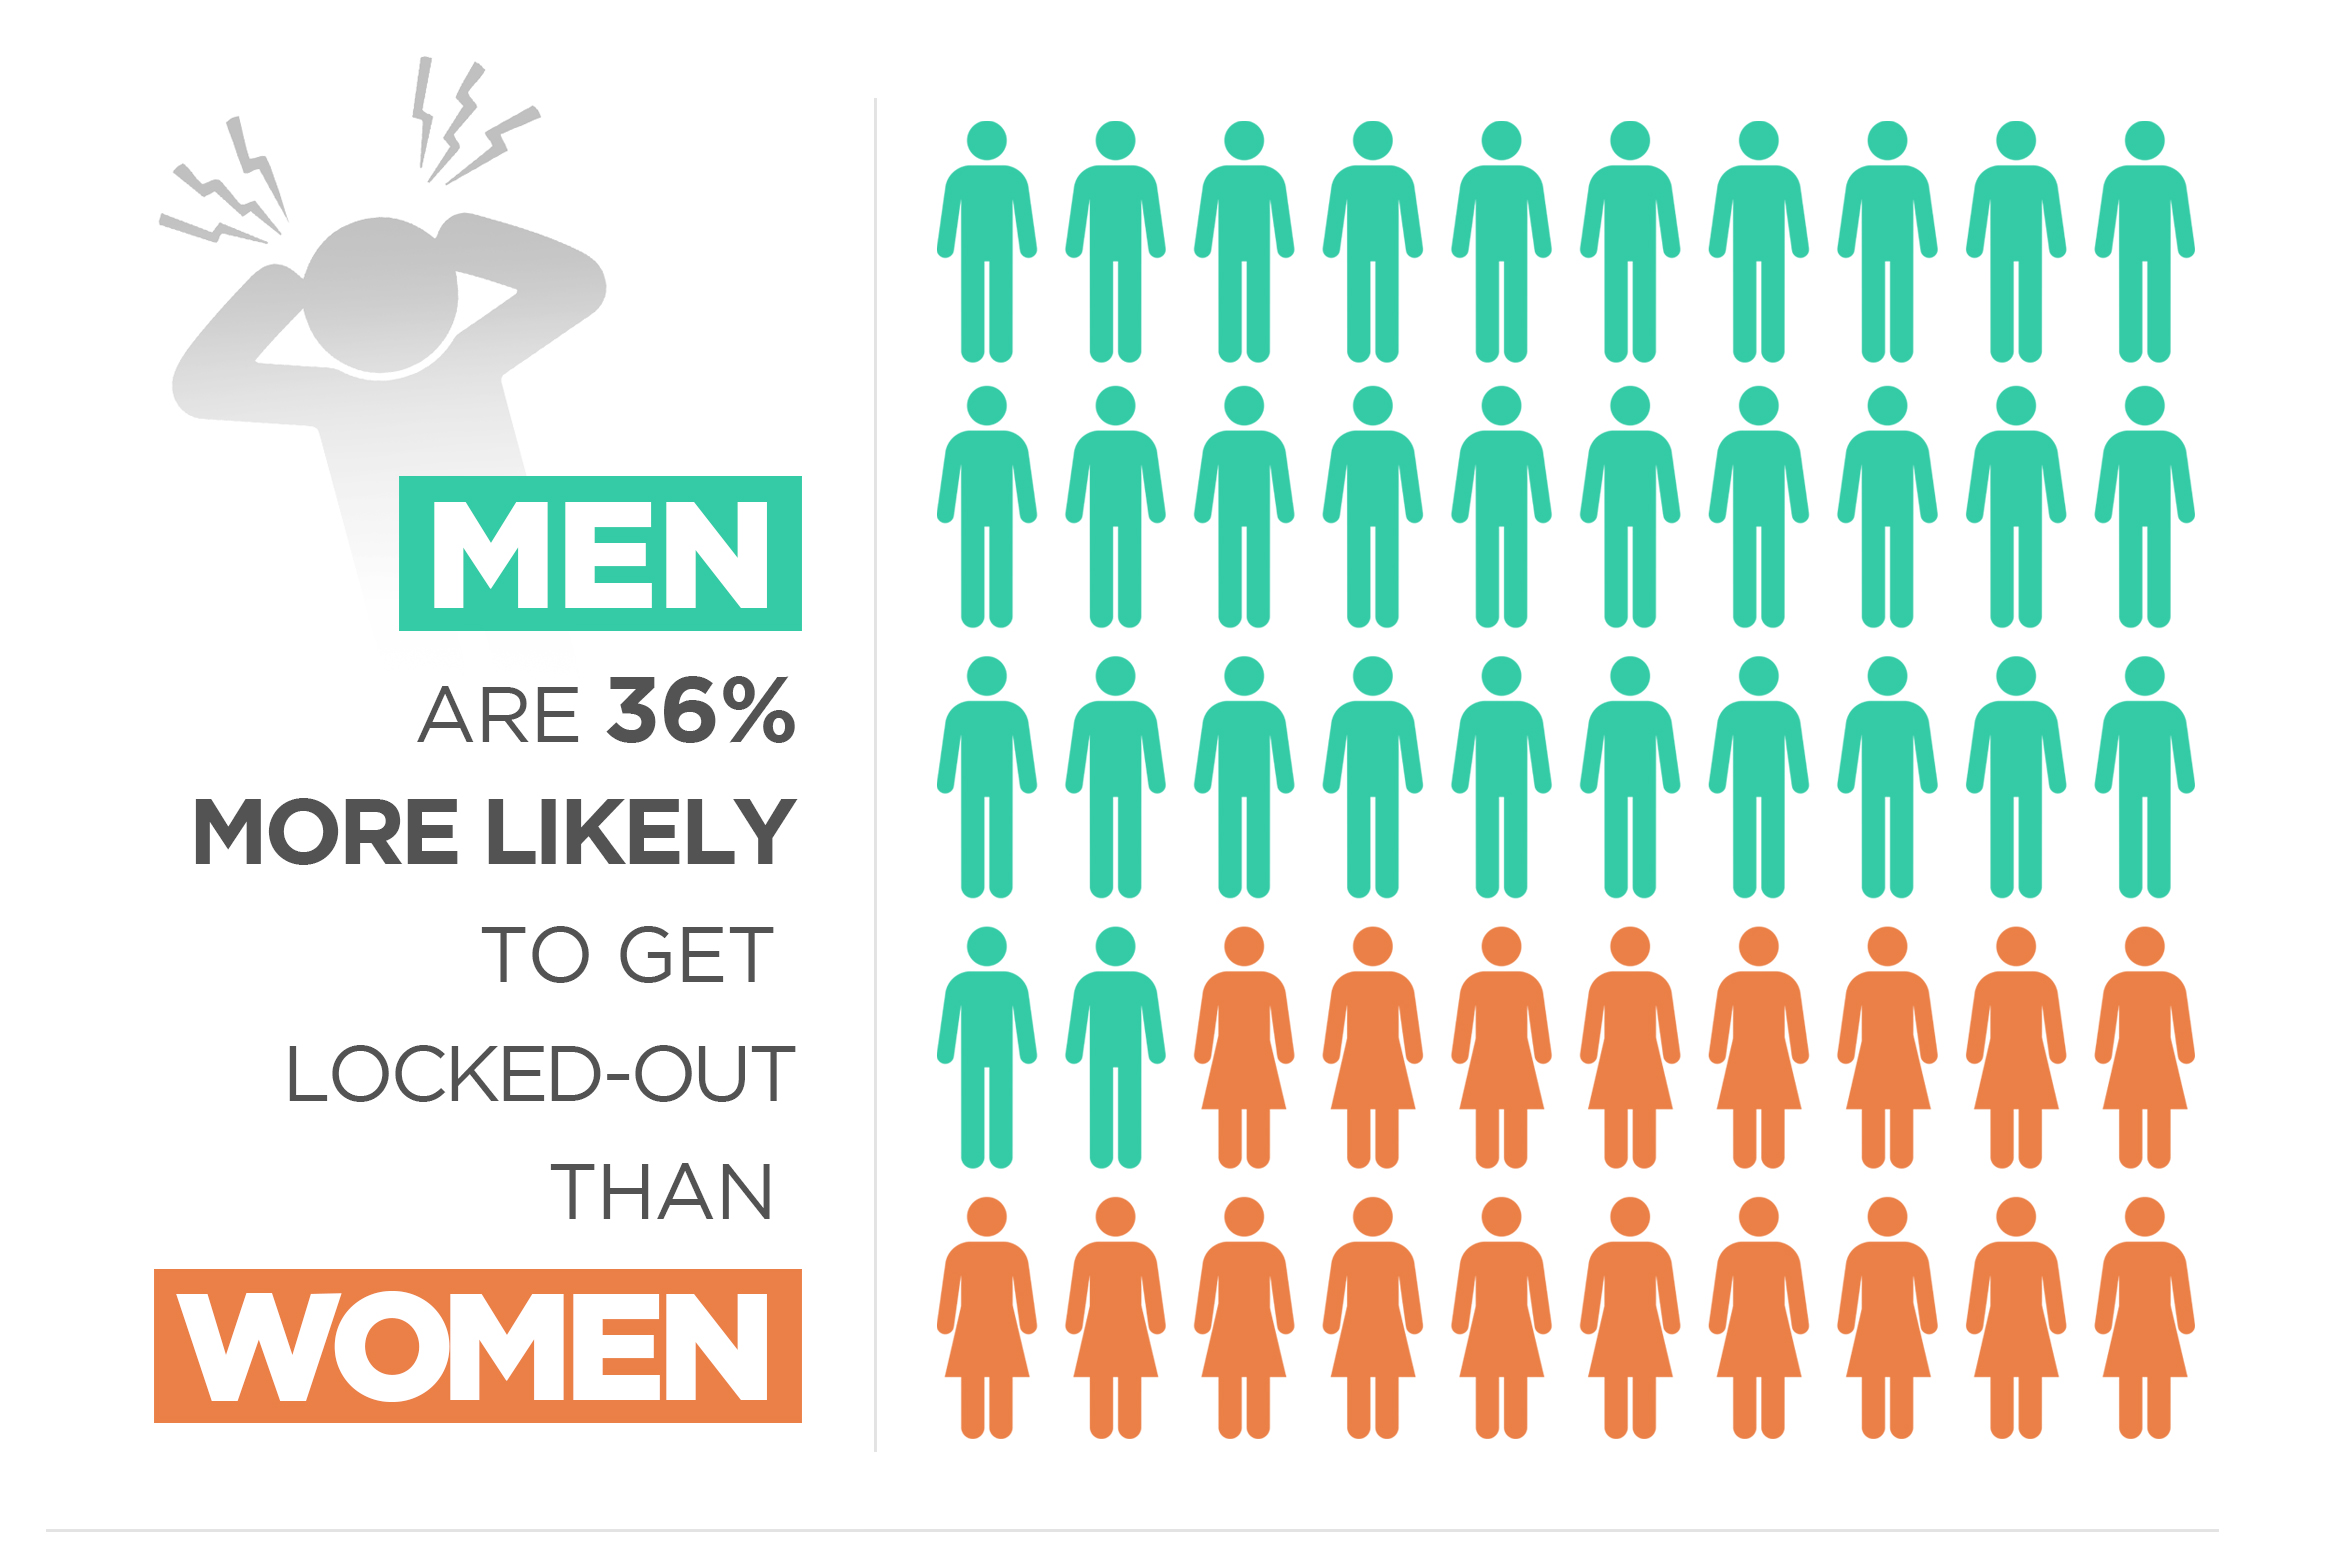 Who loses their keys more, men or women?